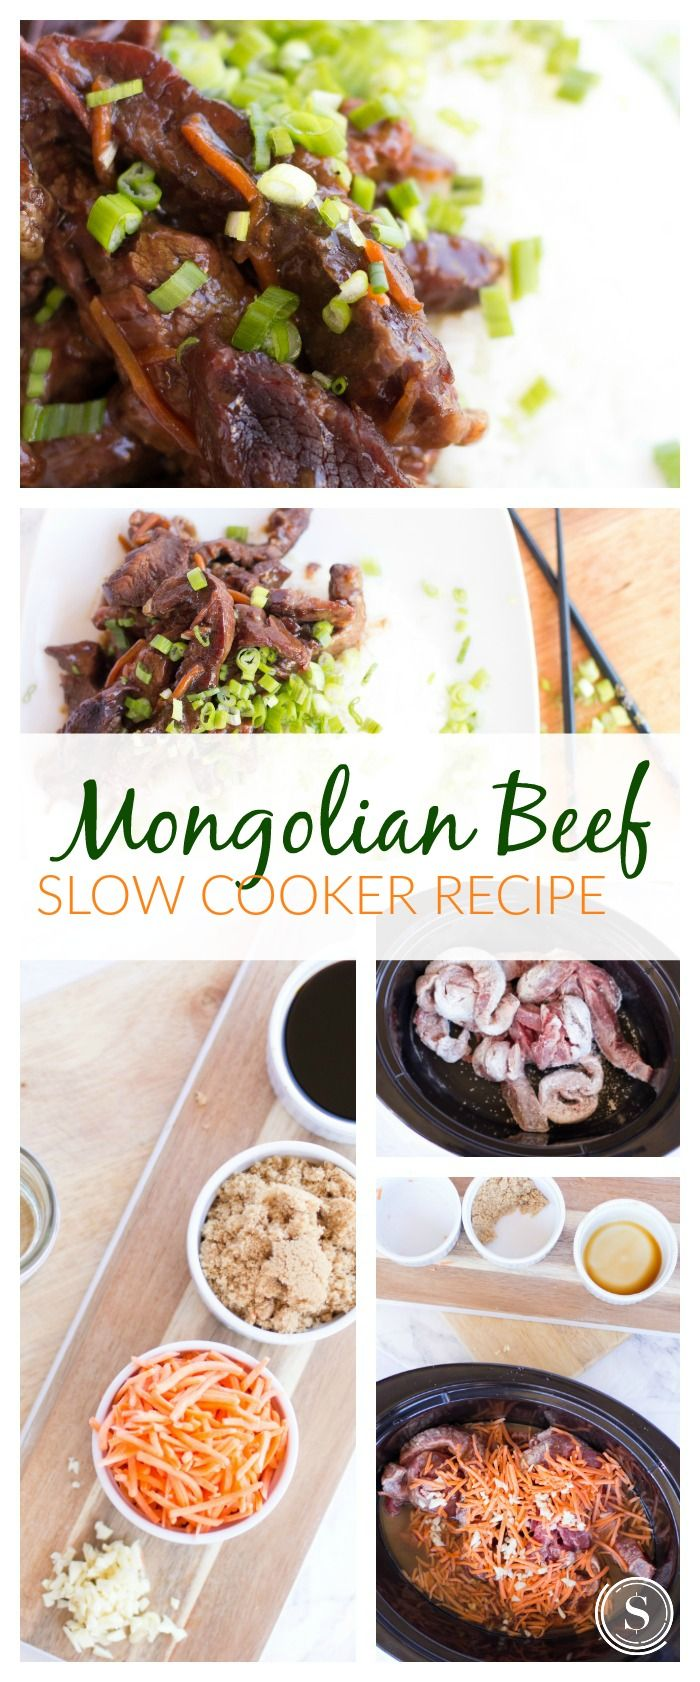 Mongolian beef slow cooker recipe easy crockpot meal idea for busy